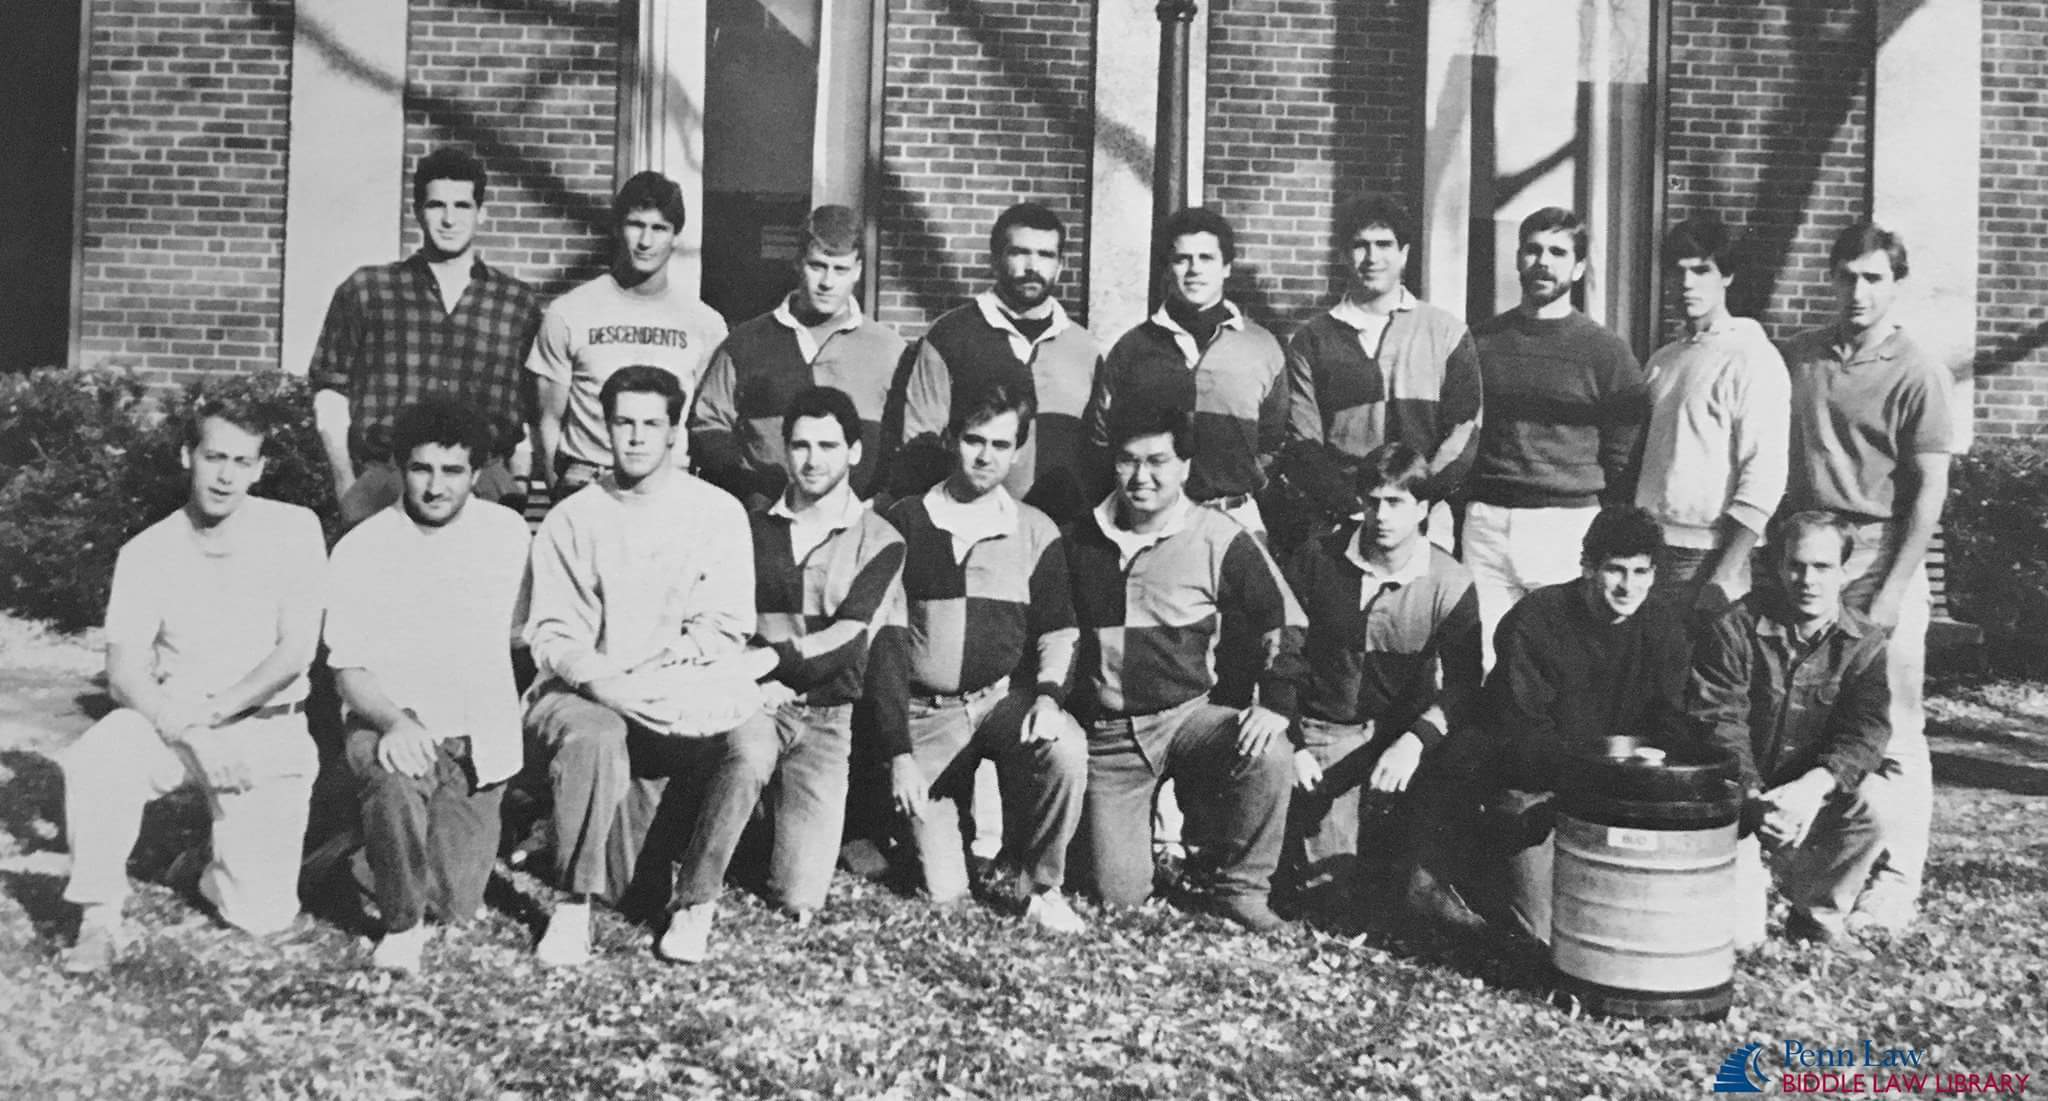 1988 Old Goat Rugby Football Club